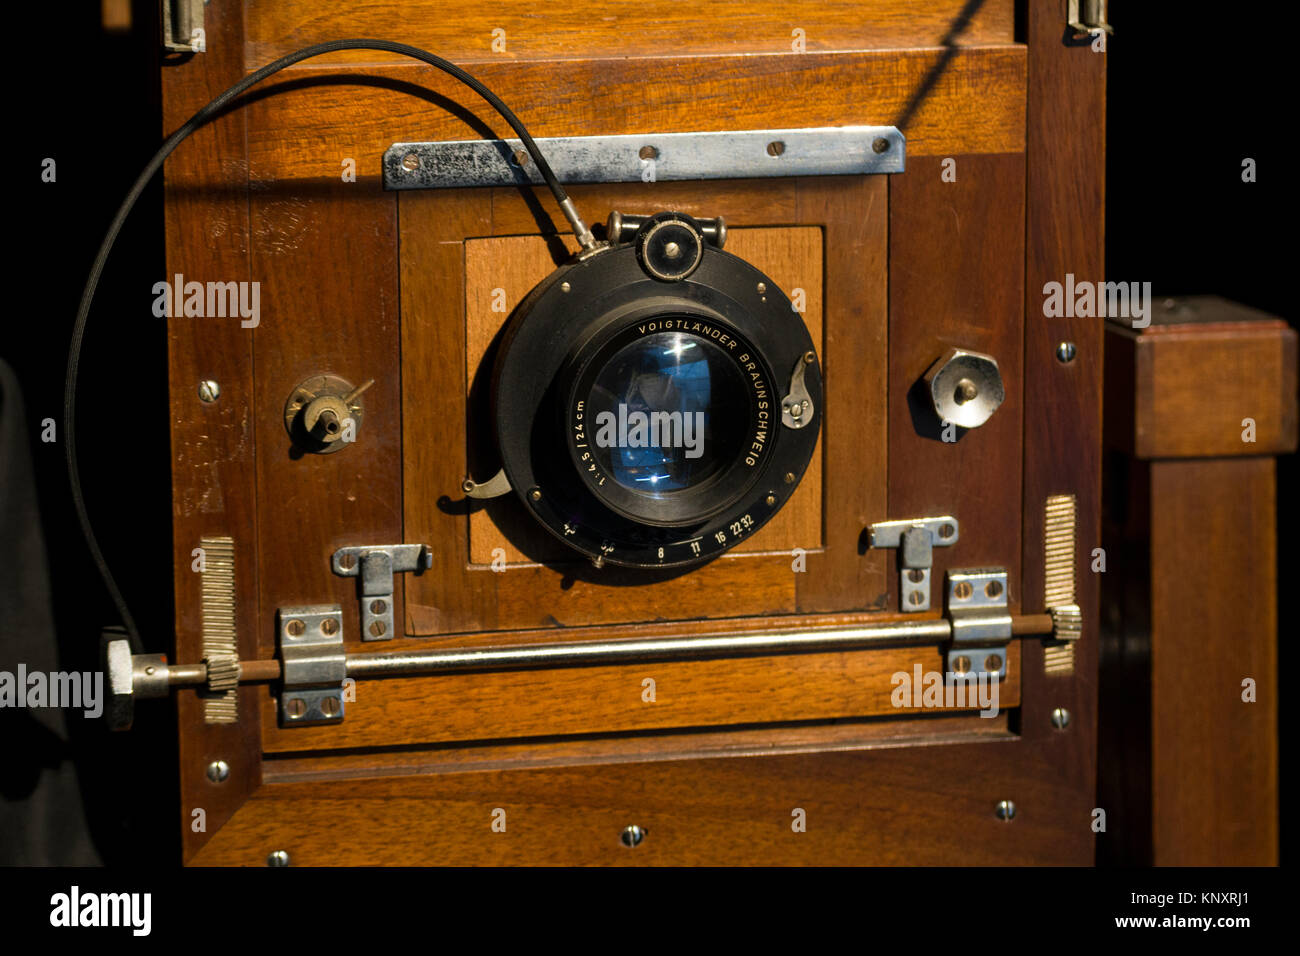 an old vintage camera built in wood - Stock Image